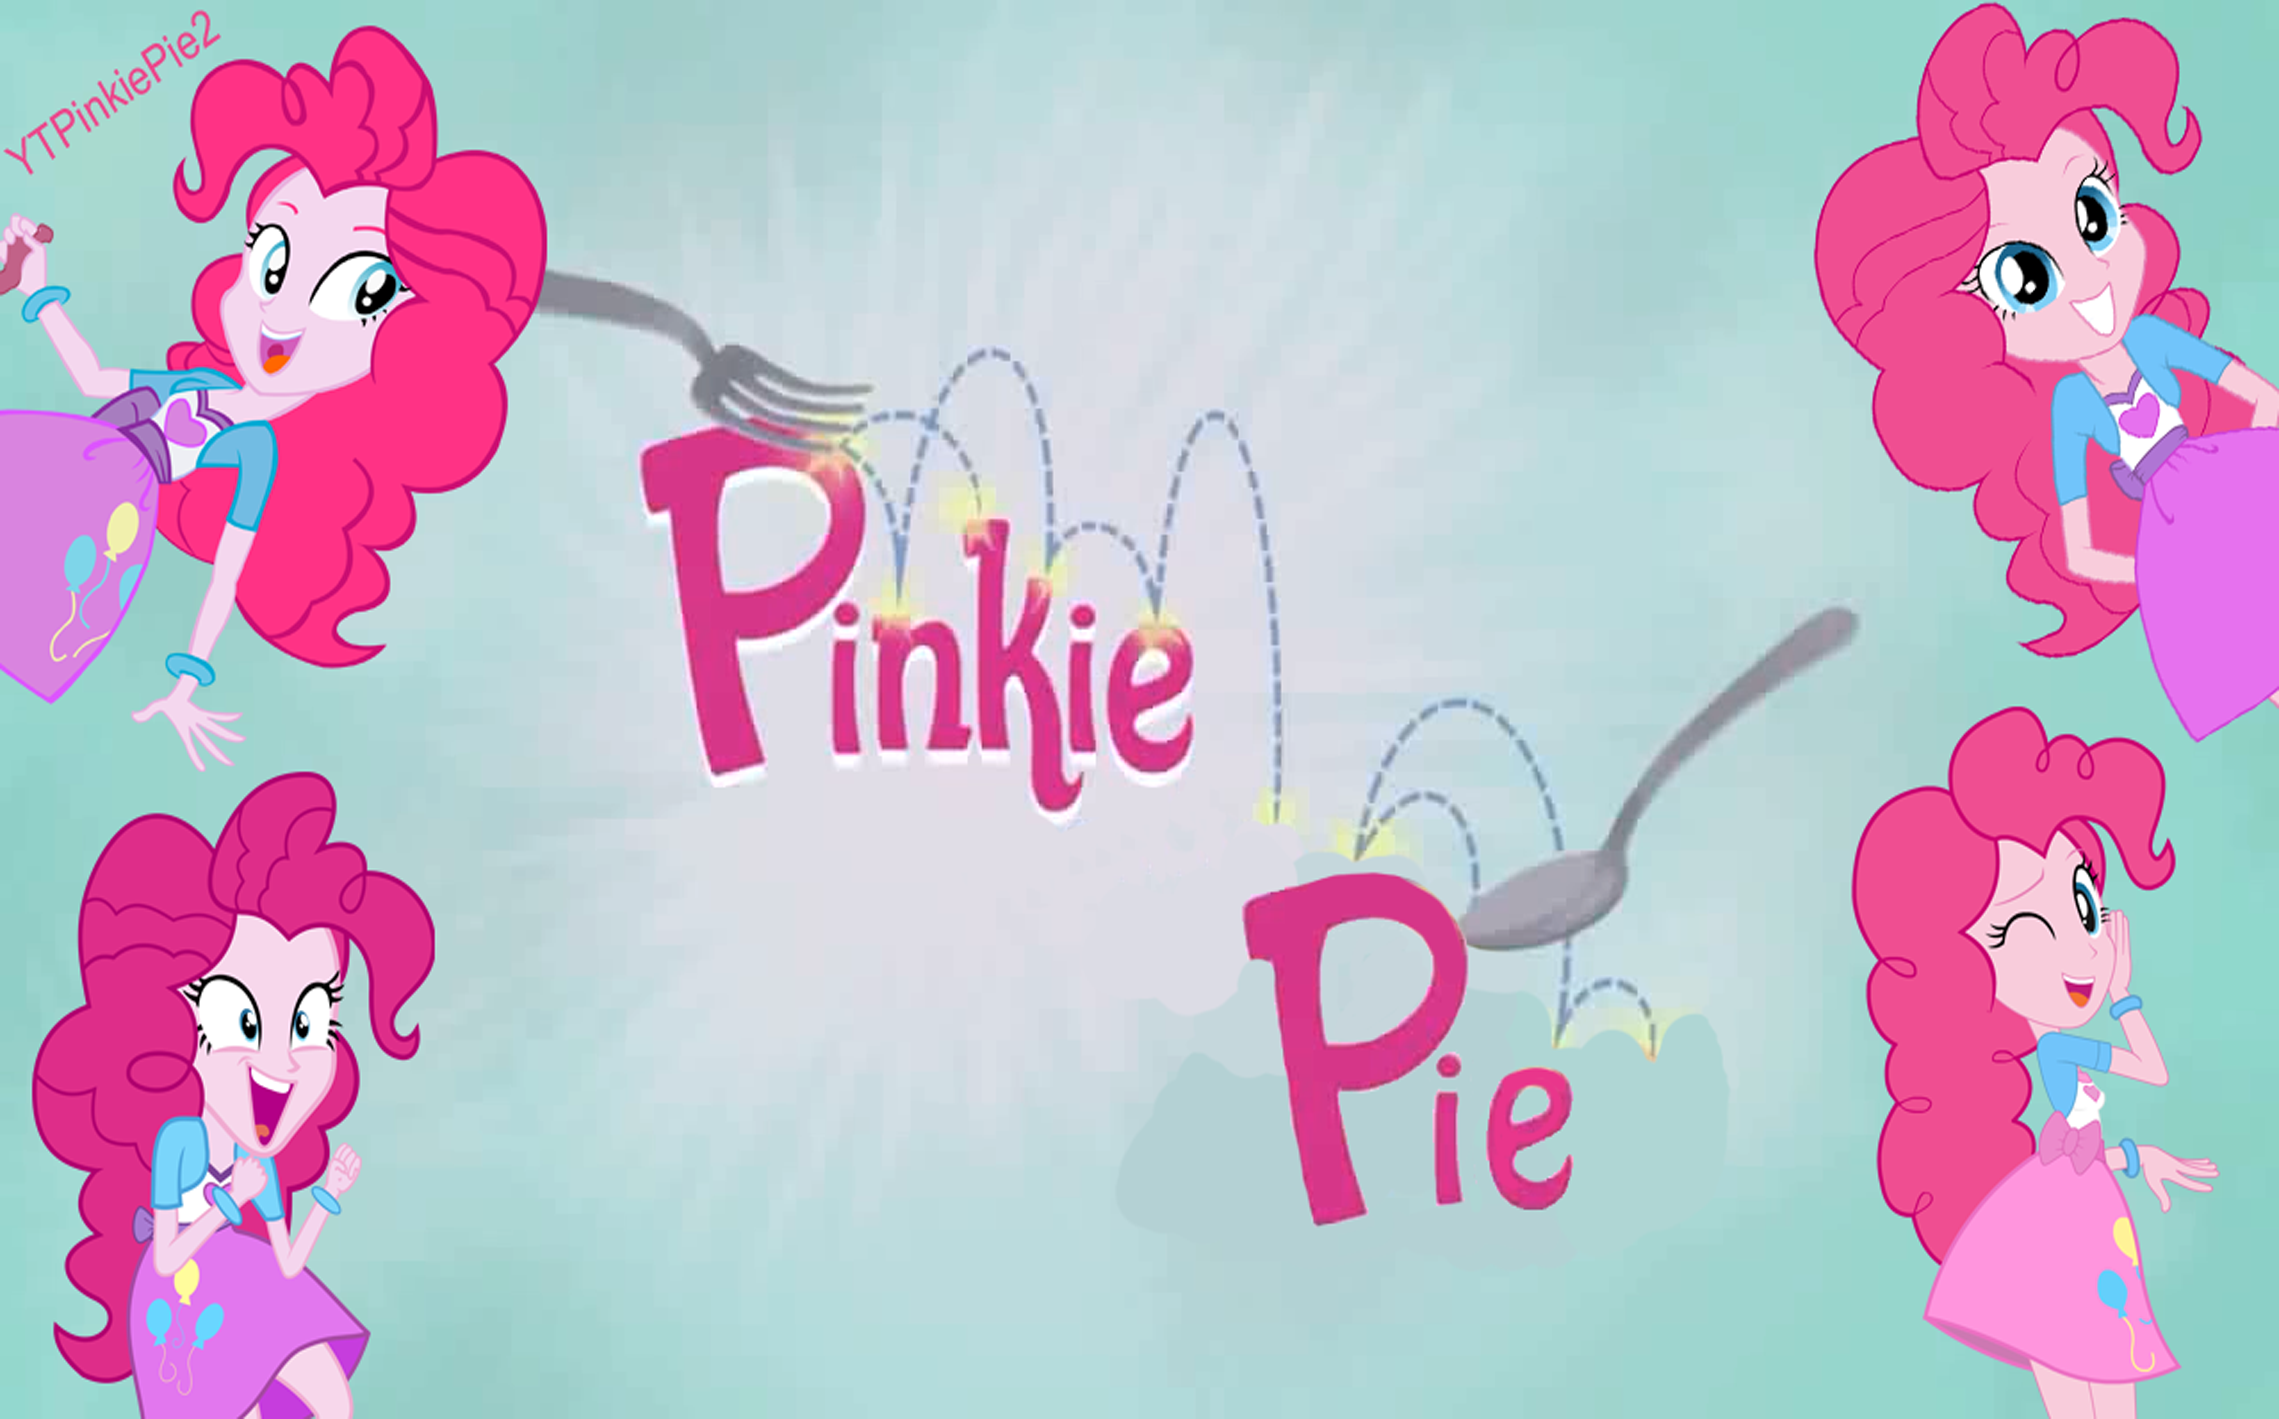 Mlp Equestria Girls Pinkie Pie Wallpaper By Ytpinkiepie2 On